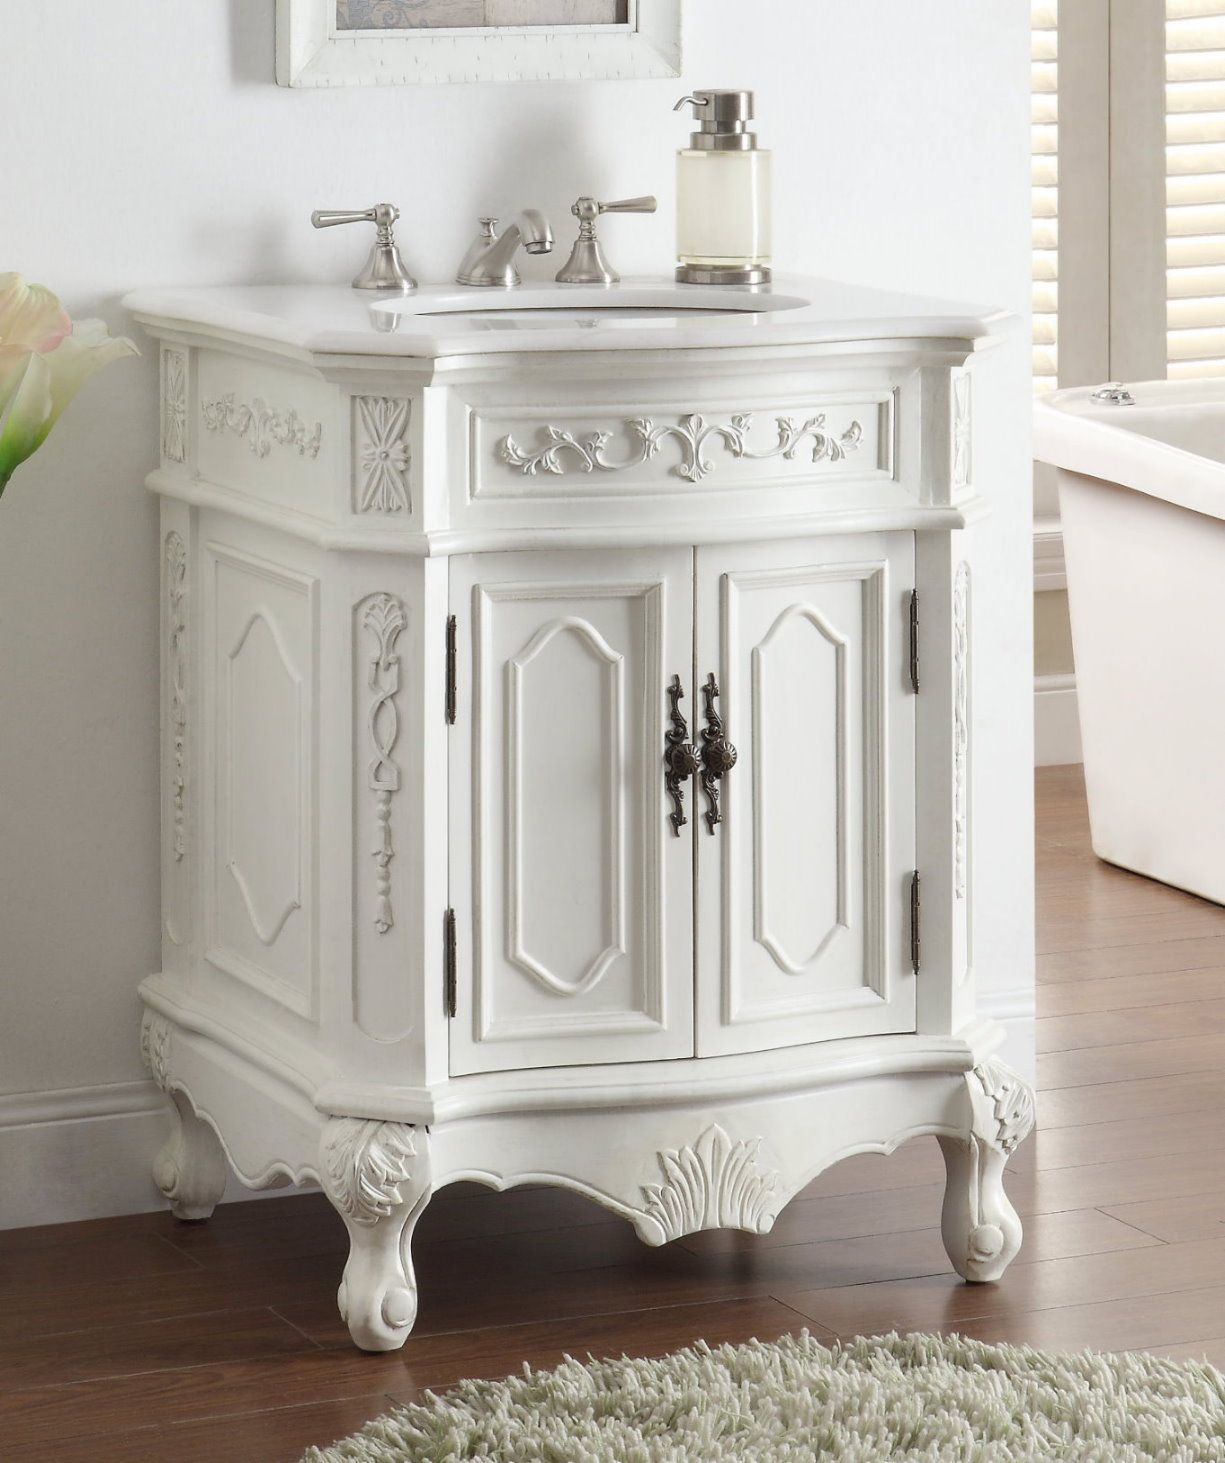 27 Inch Adelina White Finish Antique Bathroom Vanity With Images